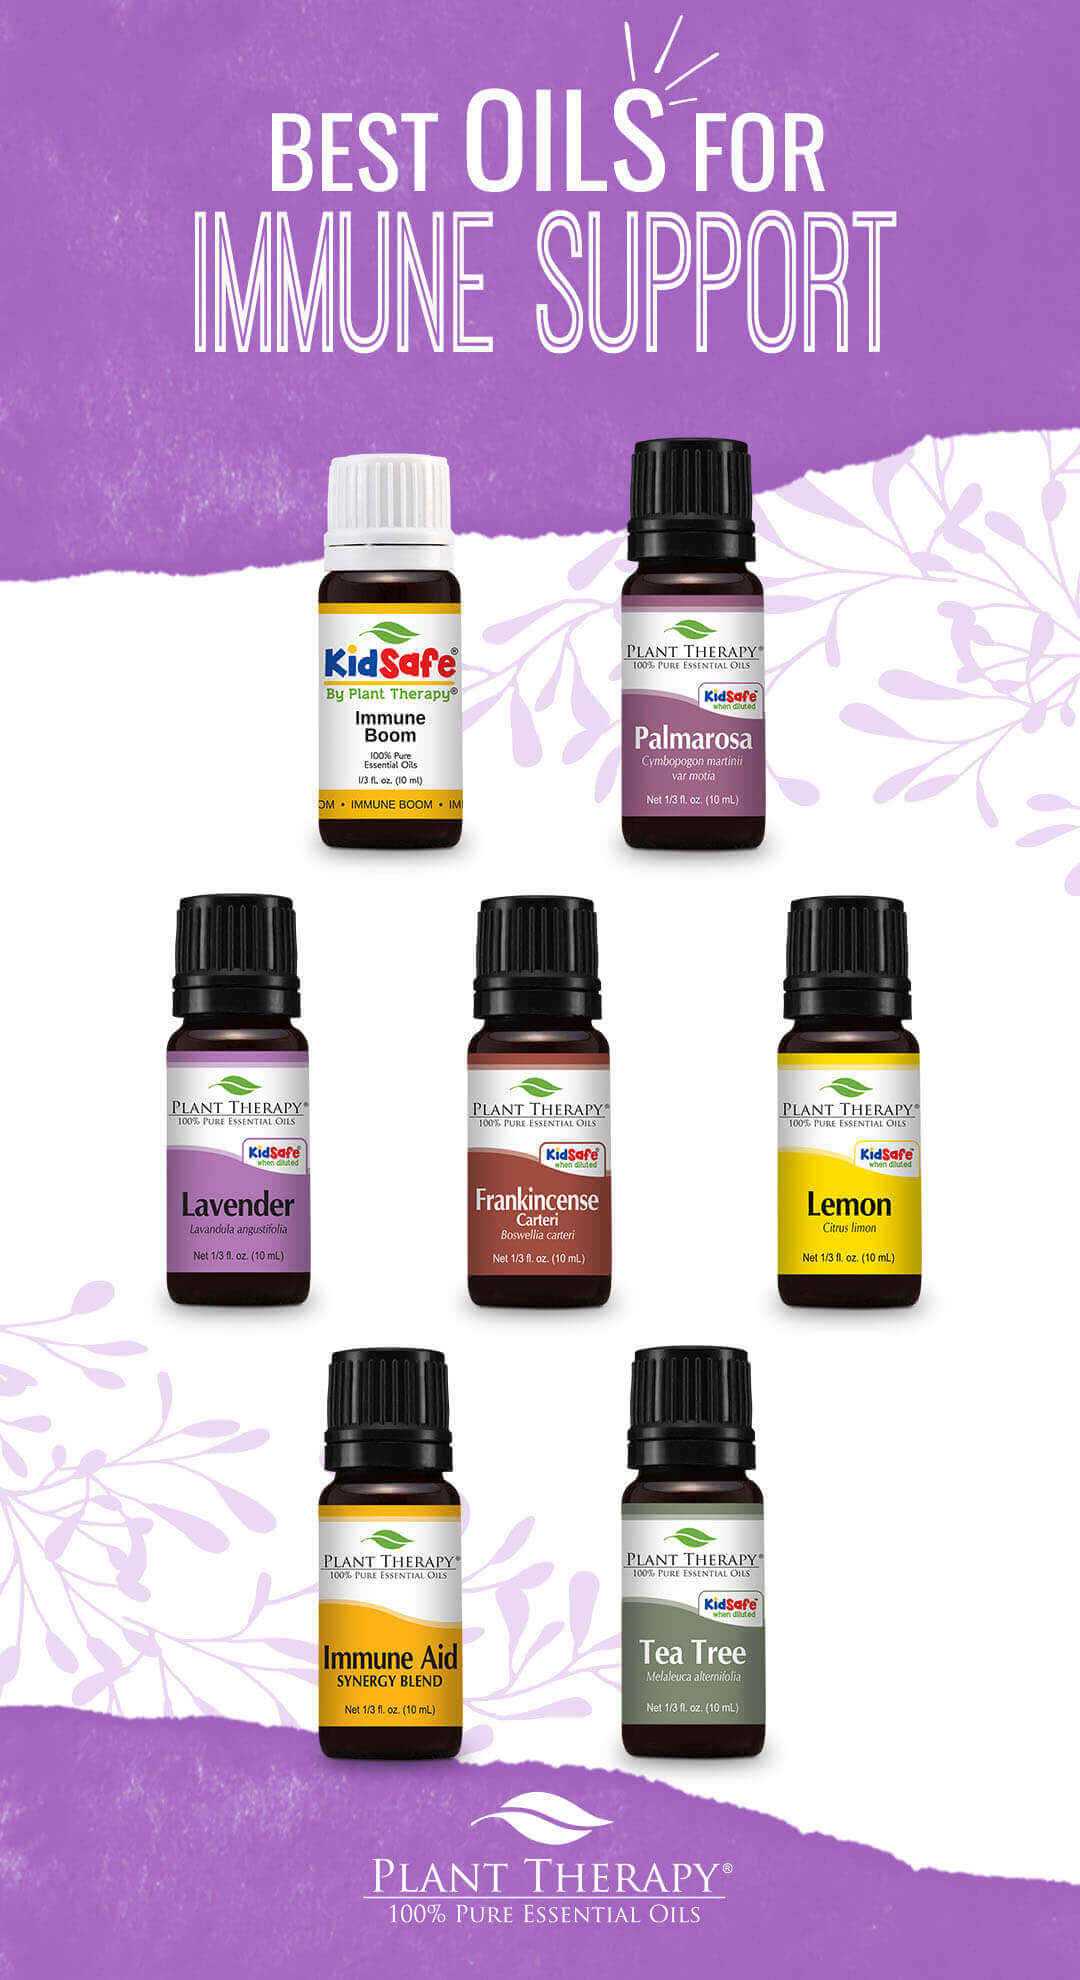 plant therapy best oils for immune support lavender lemon tea tree